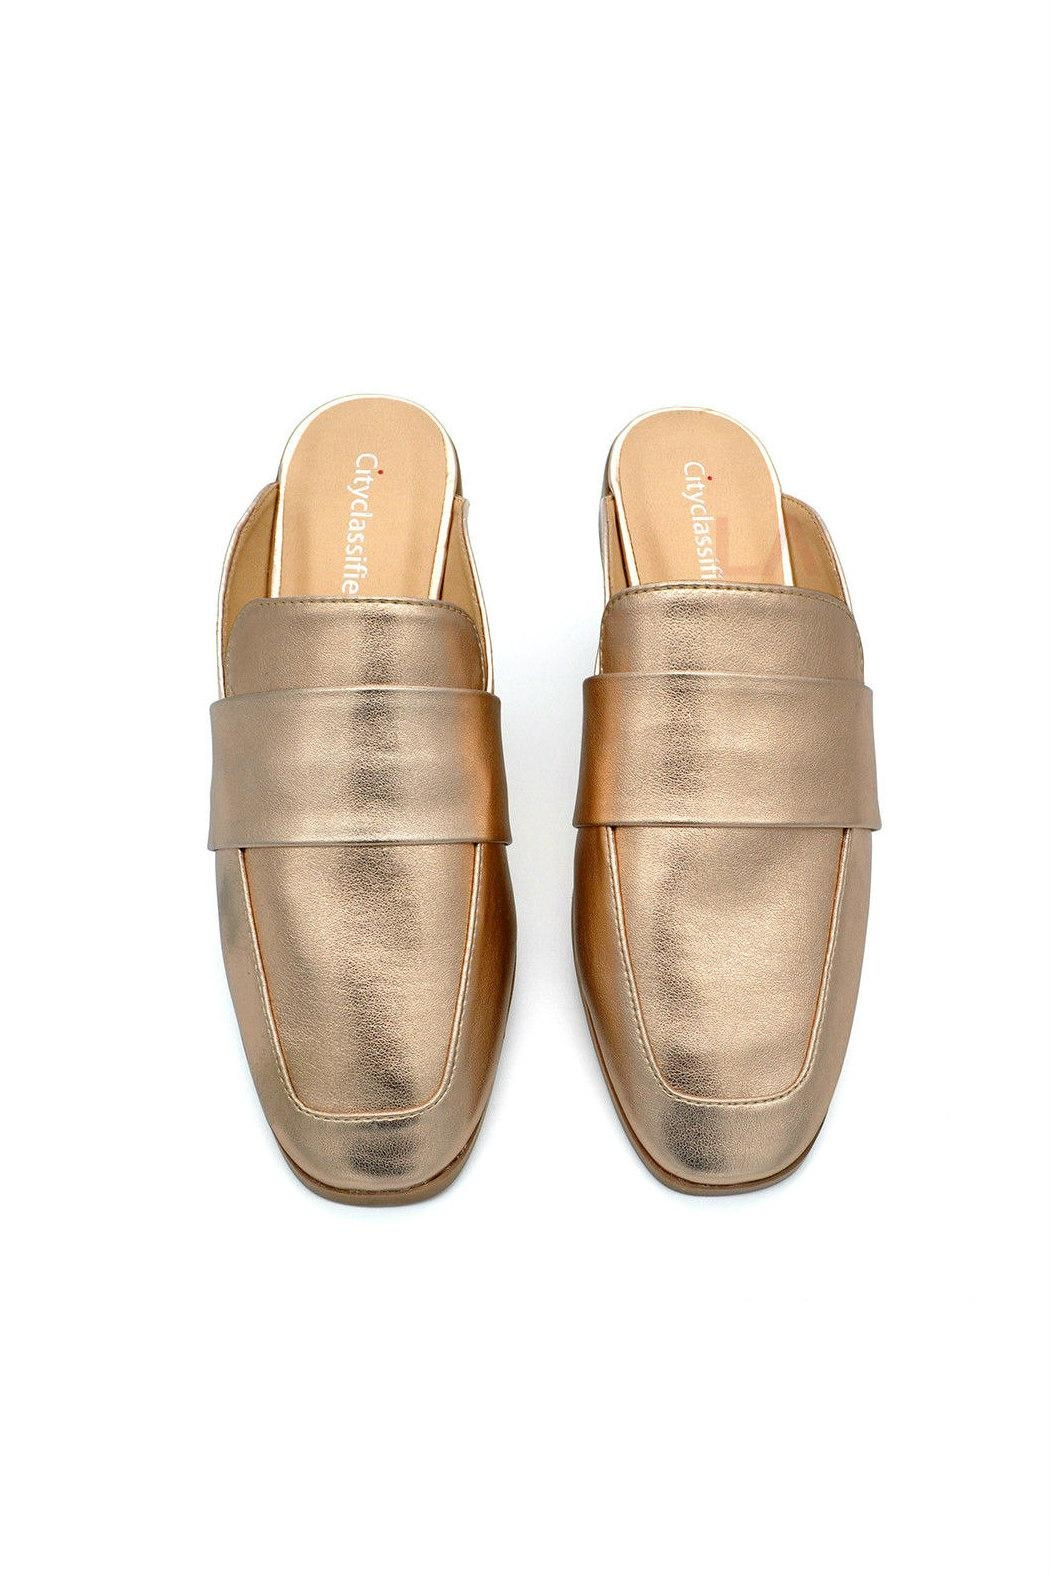 City Classified Nun Loafer Slide - Side Cropped Image